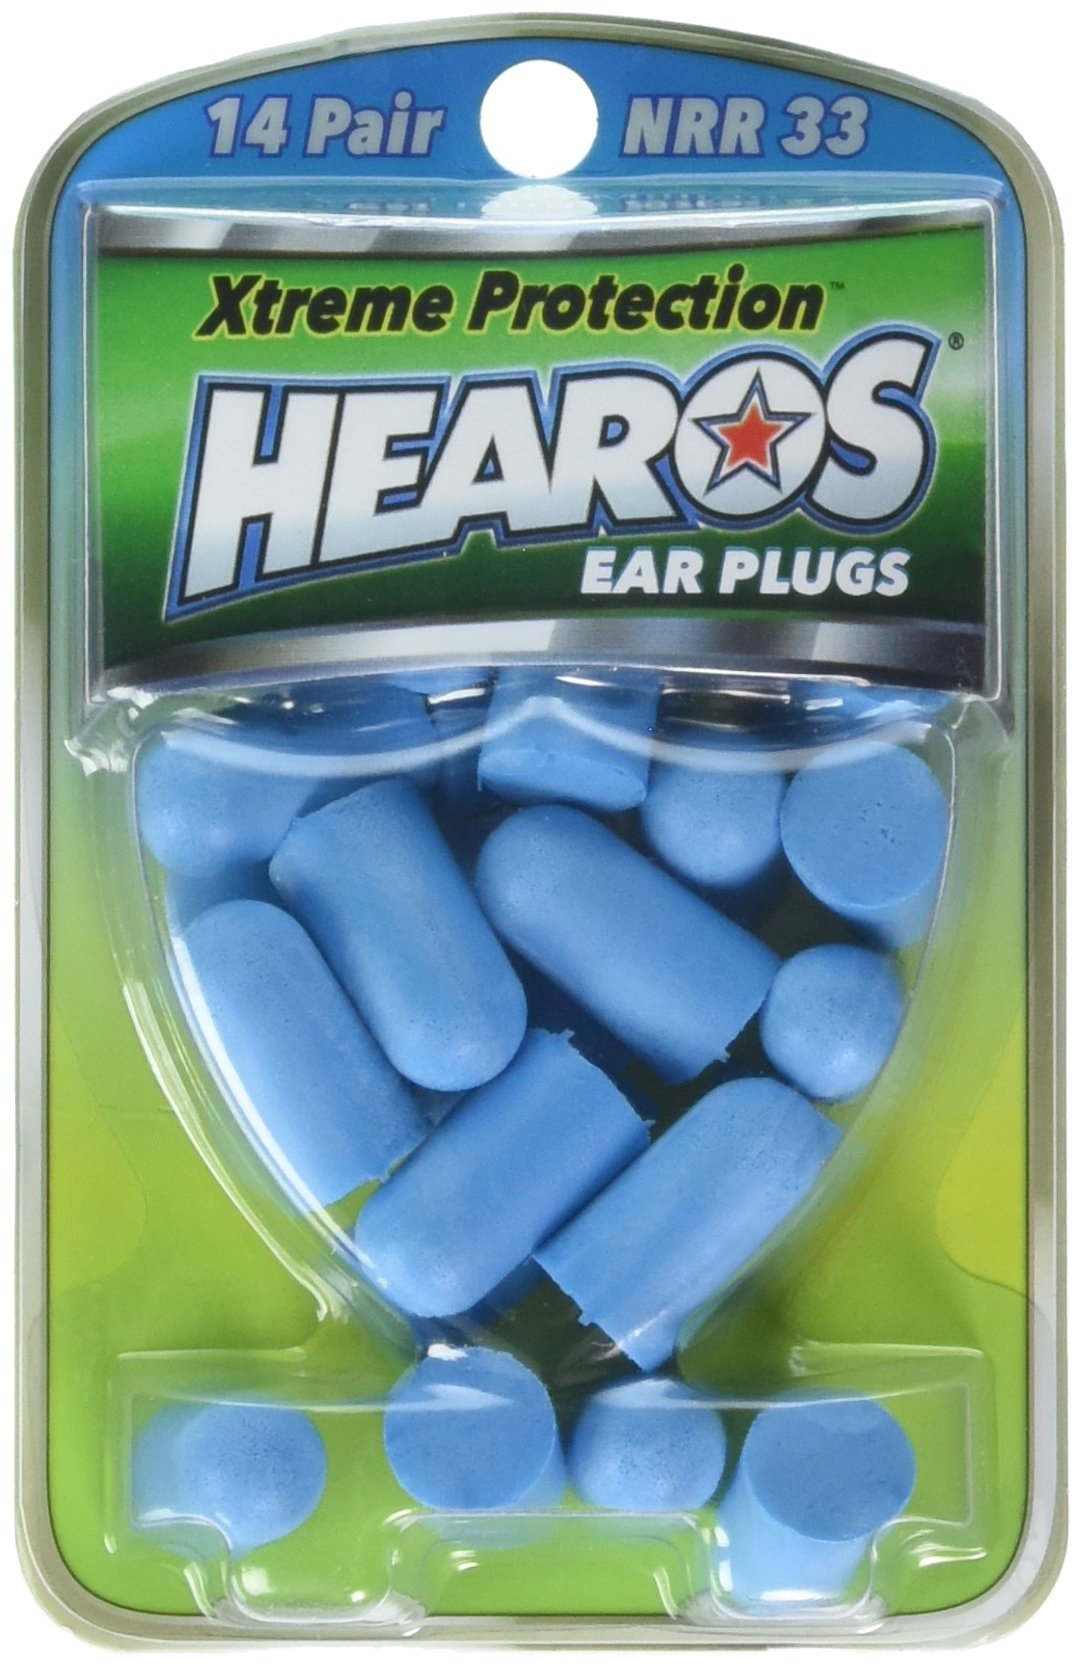 Hearos Ear Plugs Xtreme Protection Series 14 pairs ( Pack of 2)